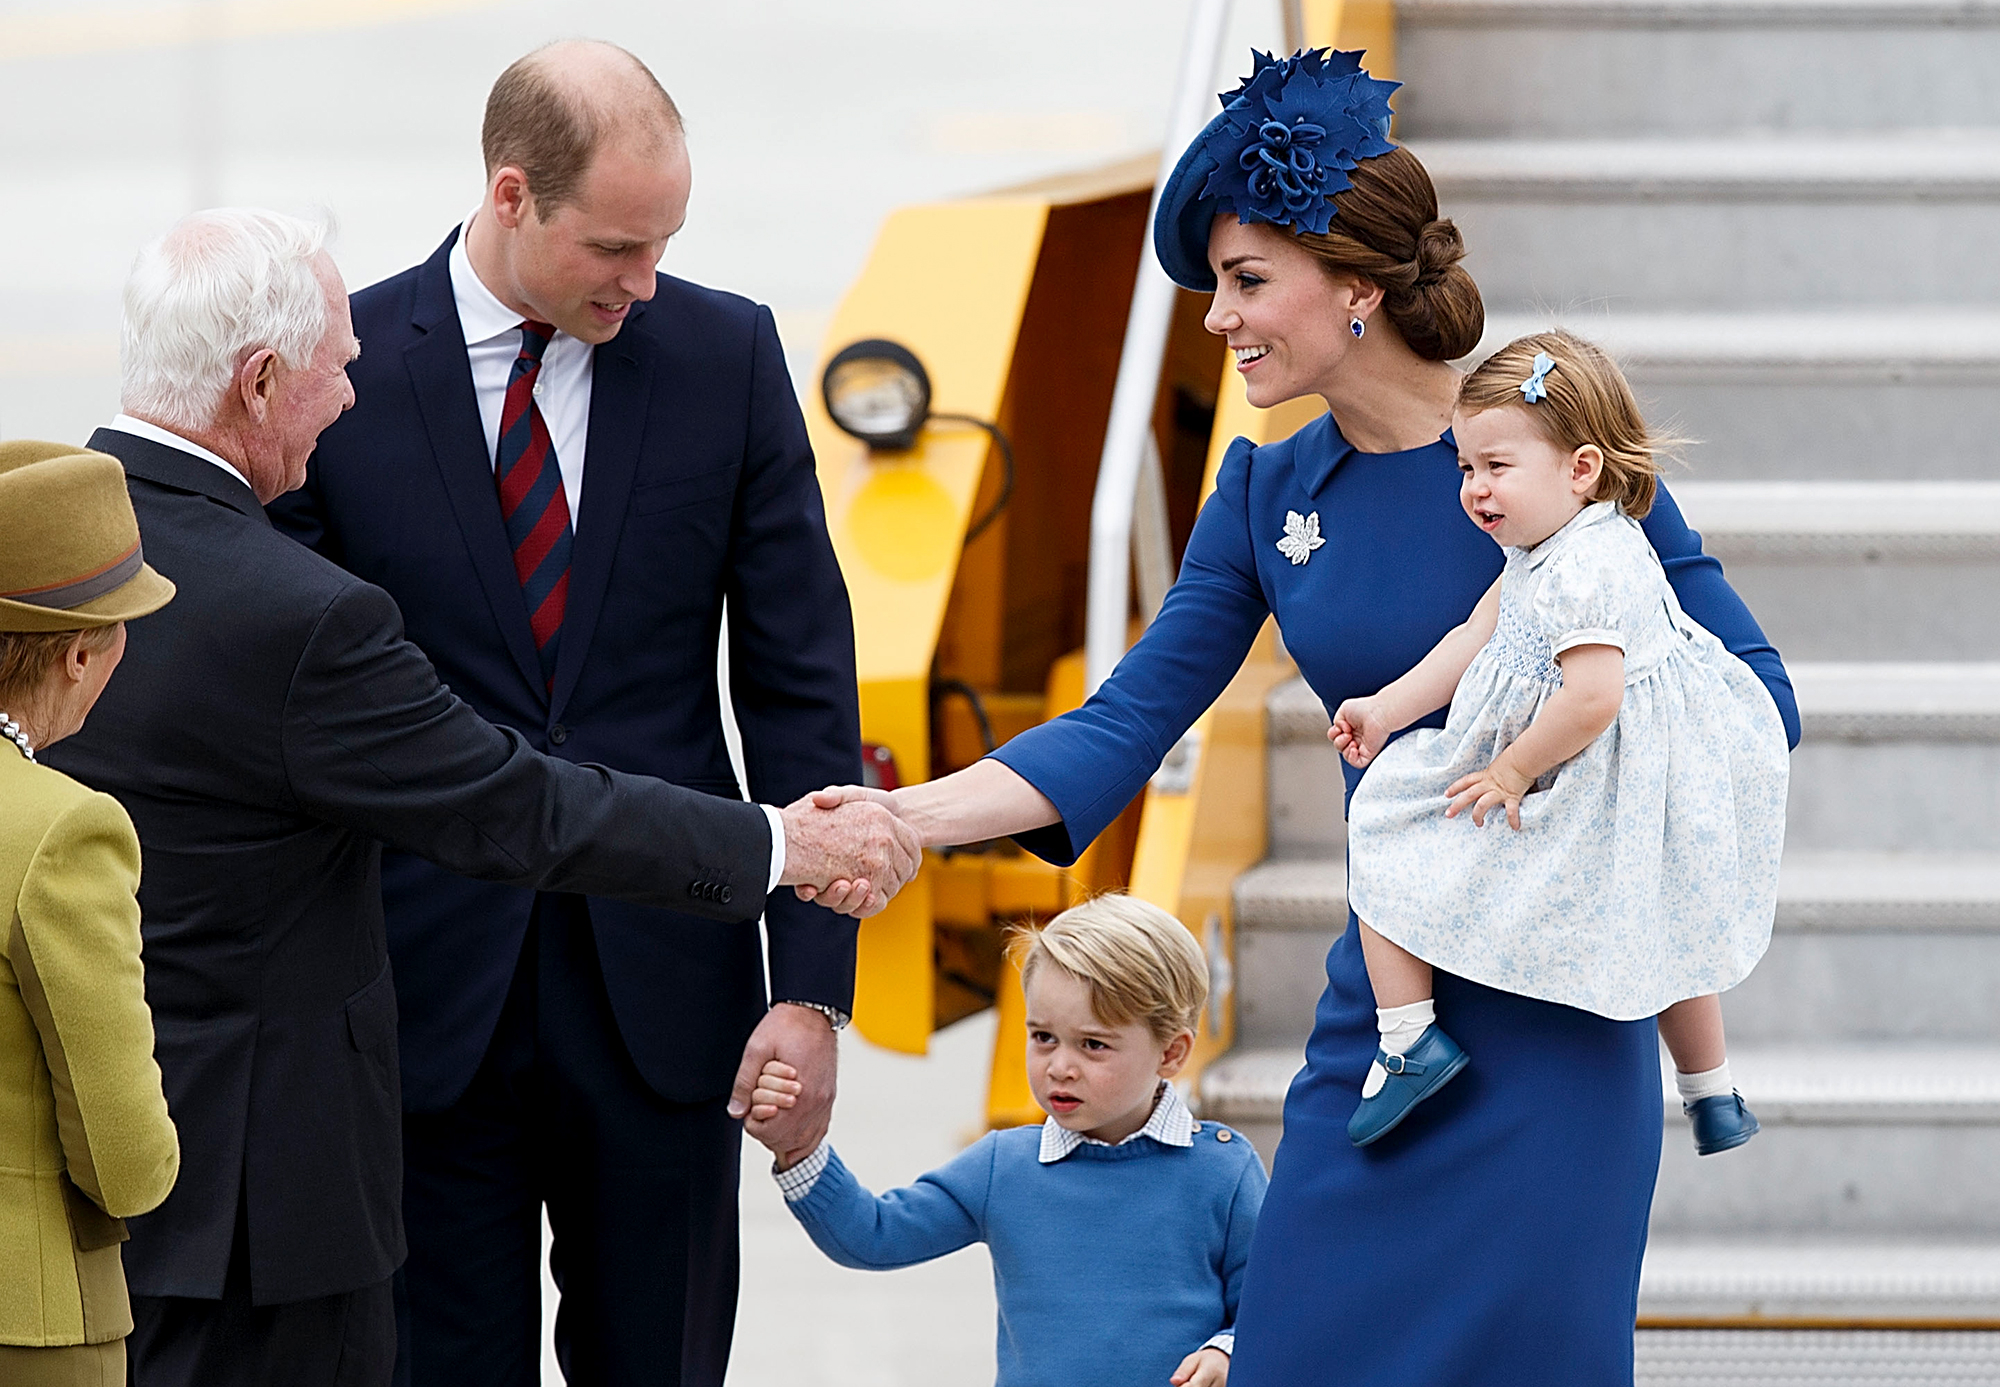 Prince William Kate Kids Arrive In Canada For Royal Tour Pics